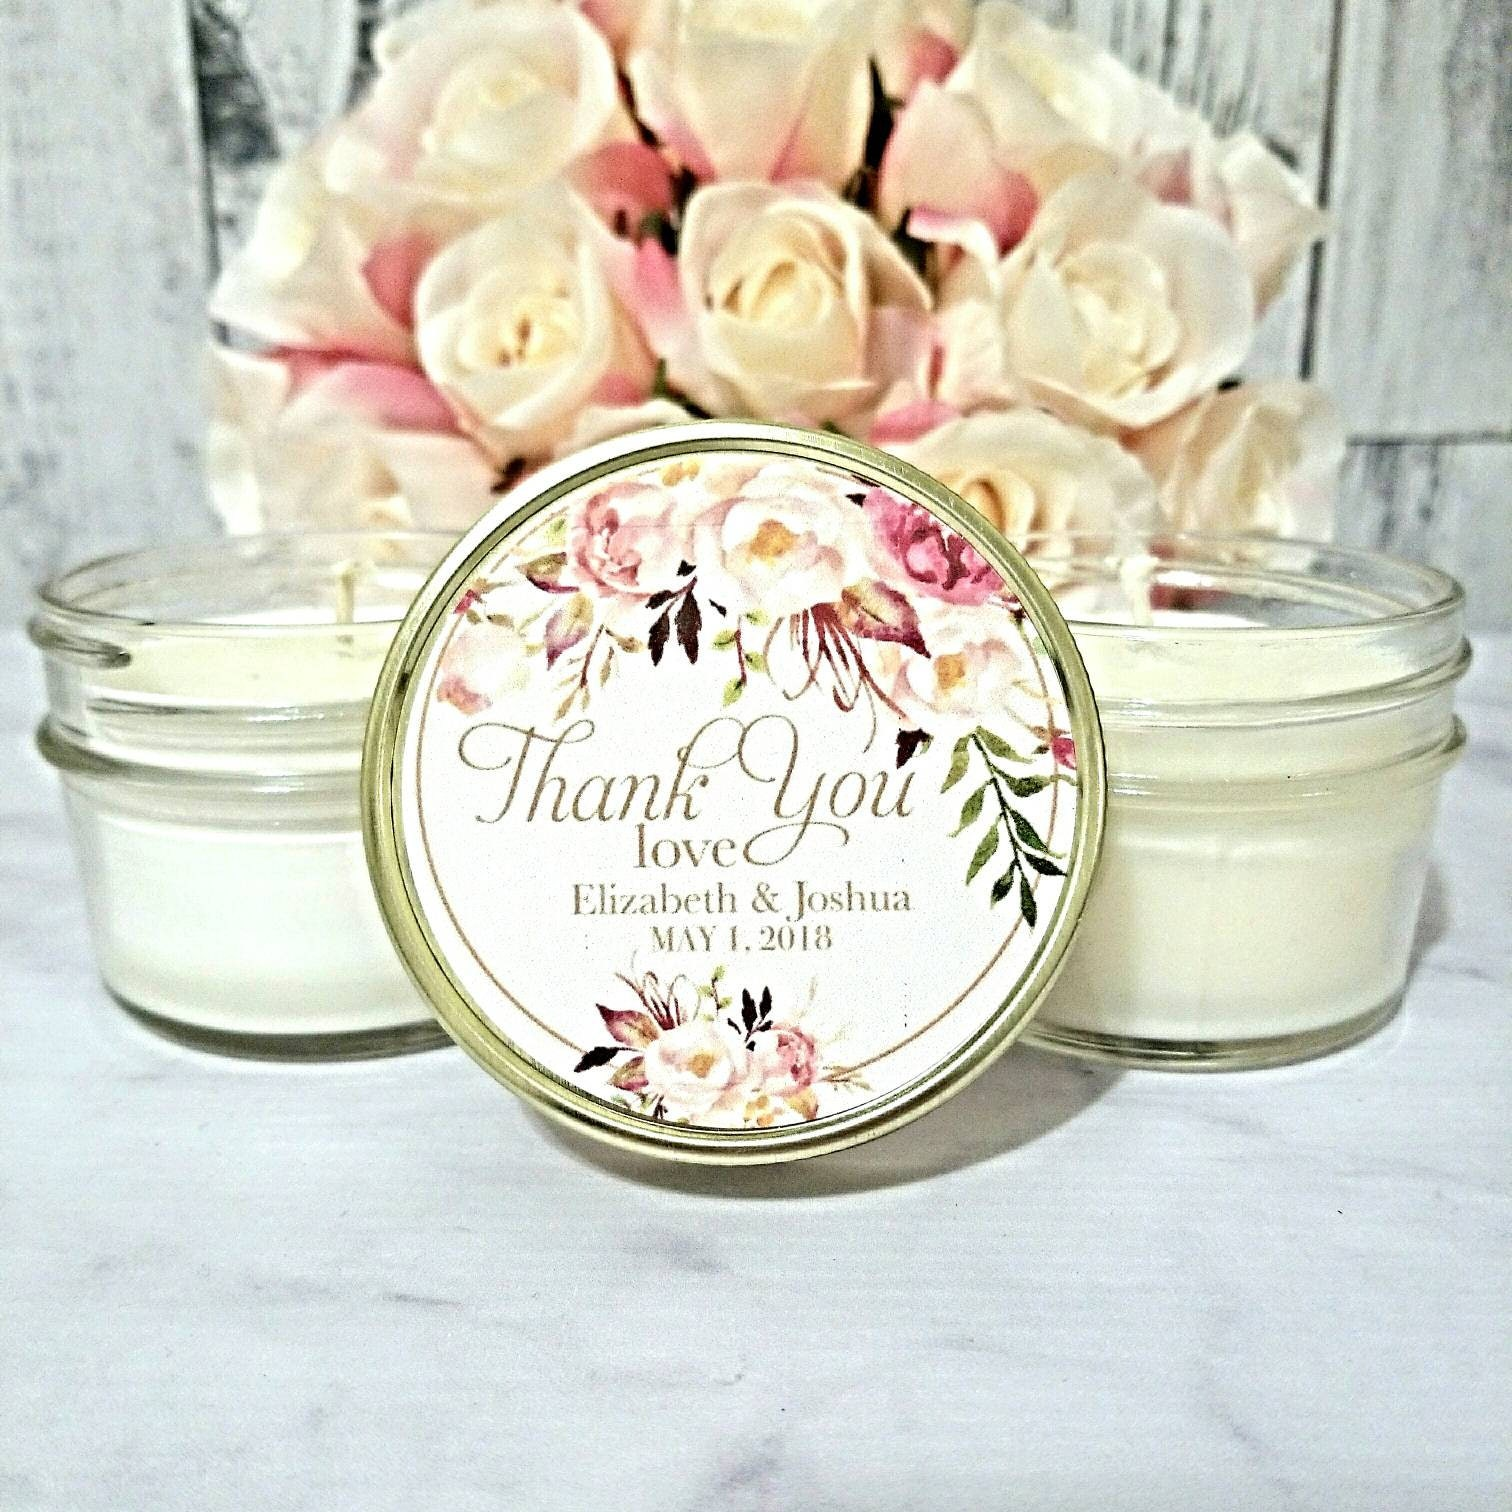 candles as wedding favors - Wedding Decor Ideas